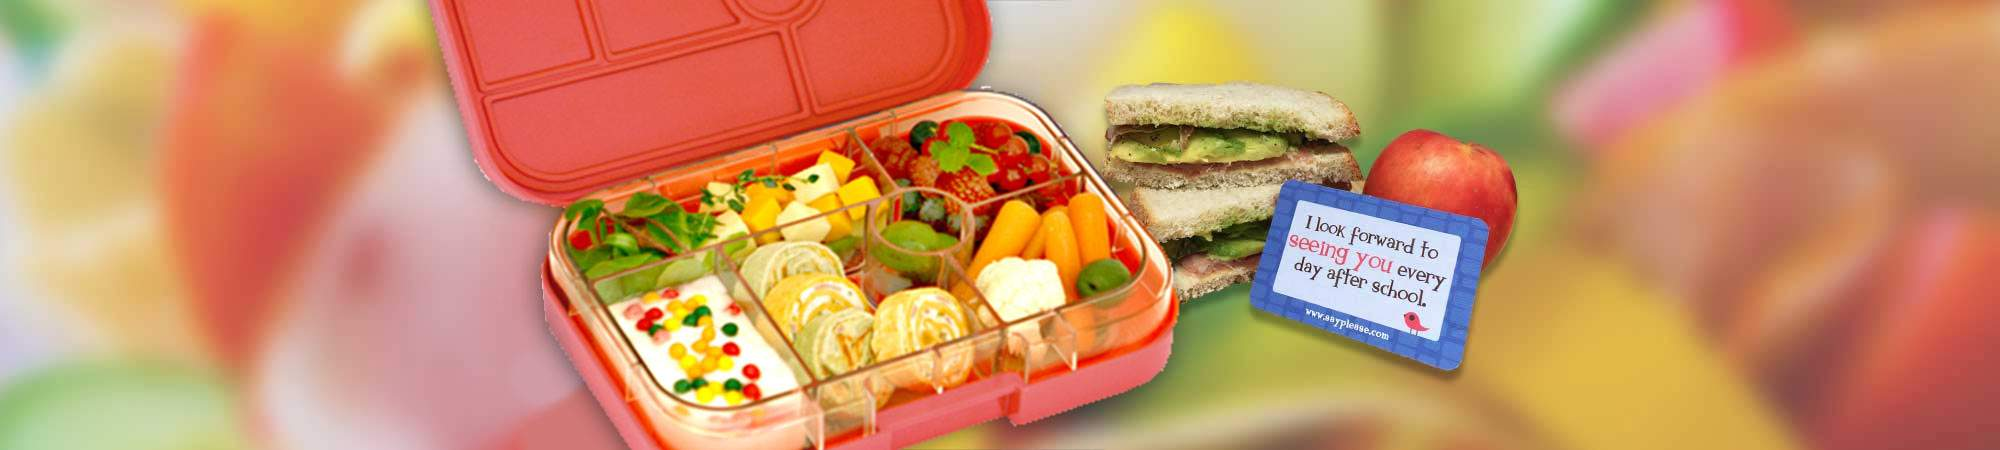 Little Bird Save 28% off Yumbox + Exclusive 50% off Awarding Winning Lunchbox Love Cards